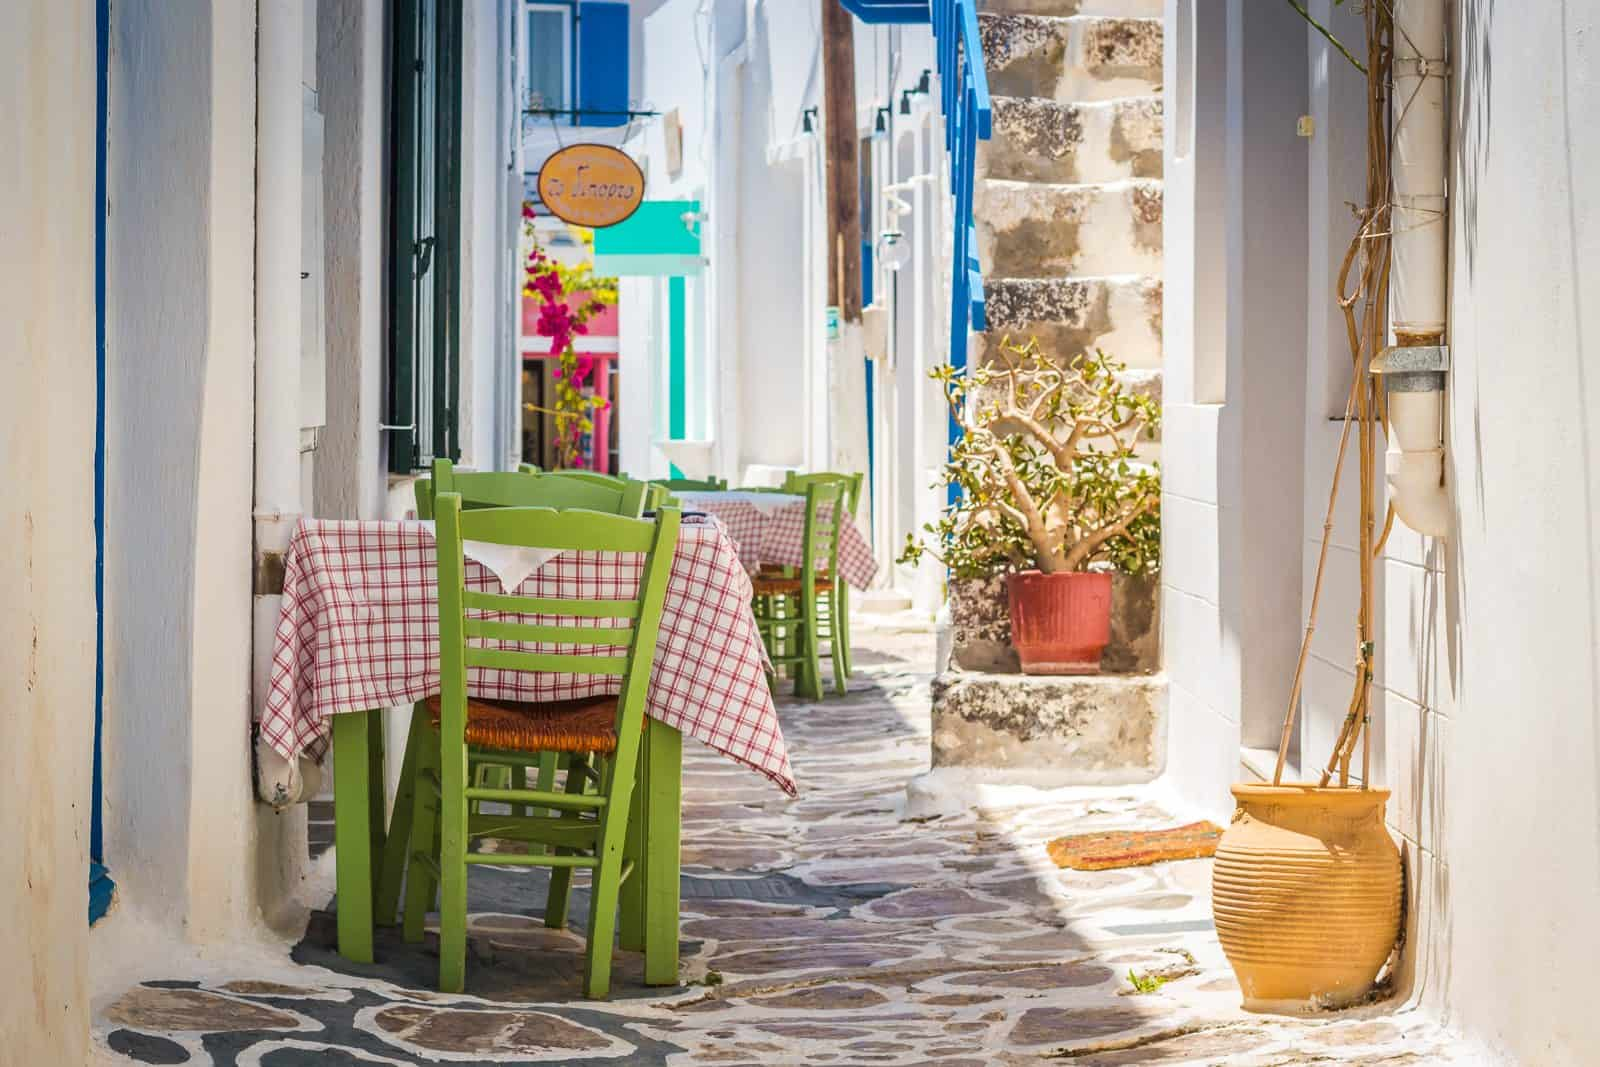 Table for Two, Plaka, Milos, Pictures of Greece